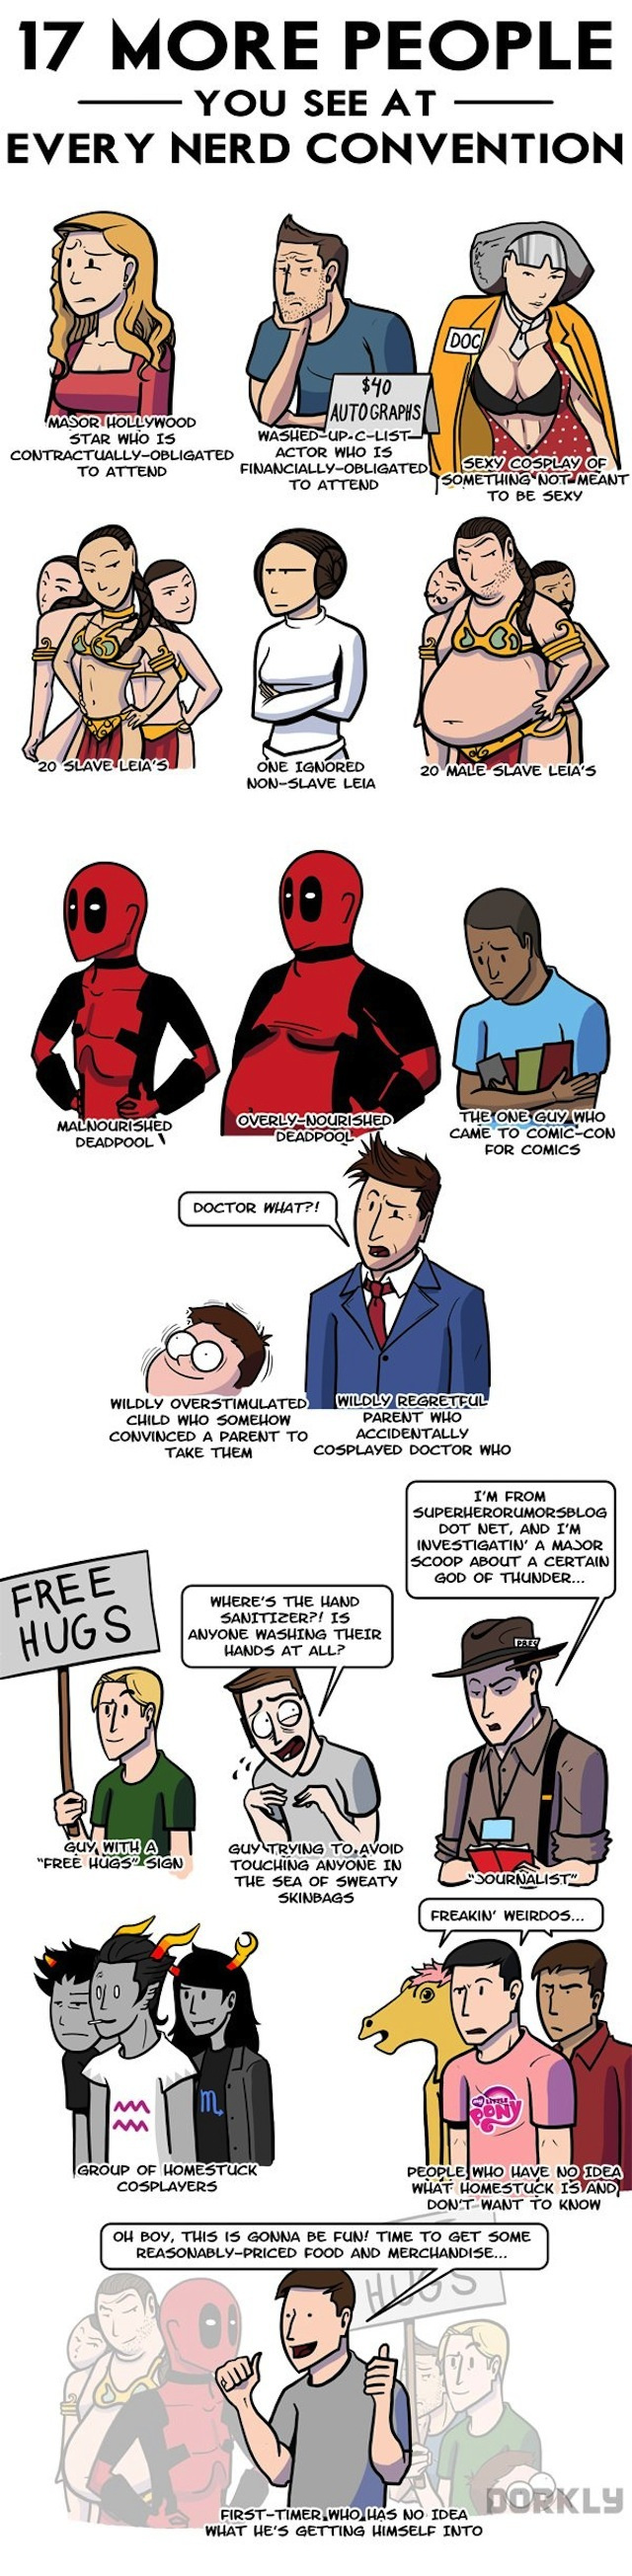 The 17 Types of People You See at Any Nerd Convention